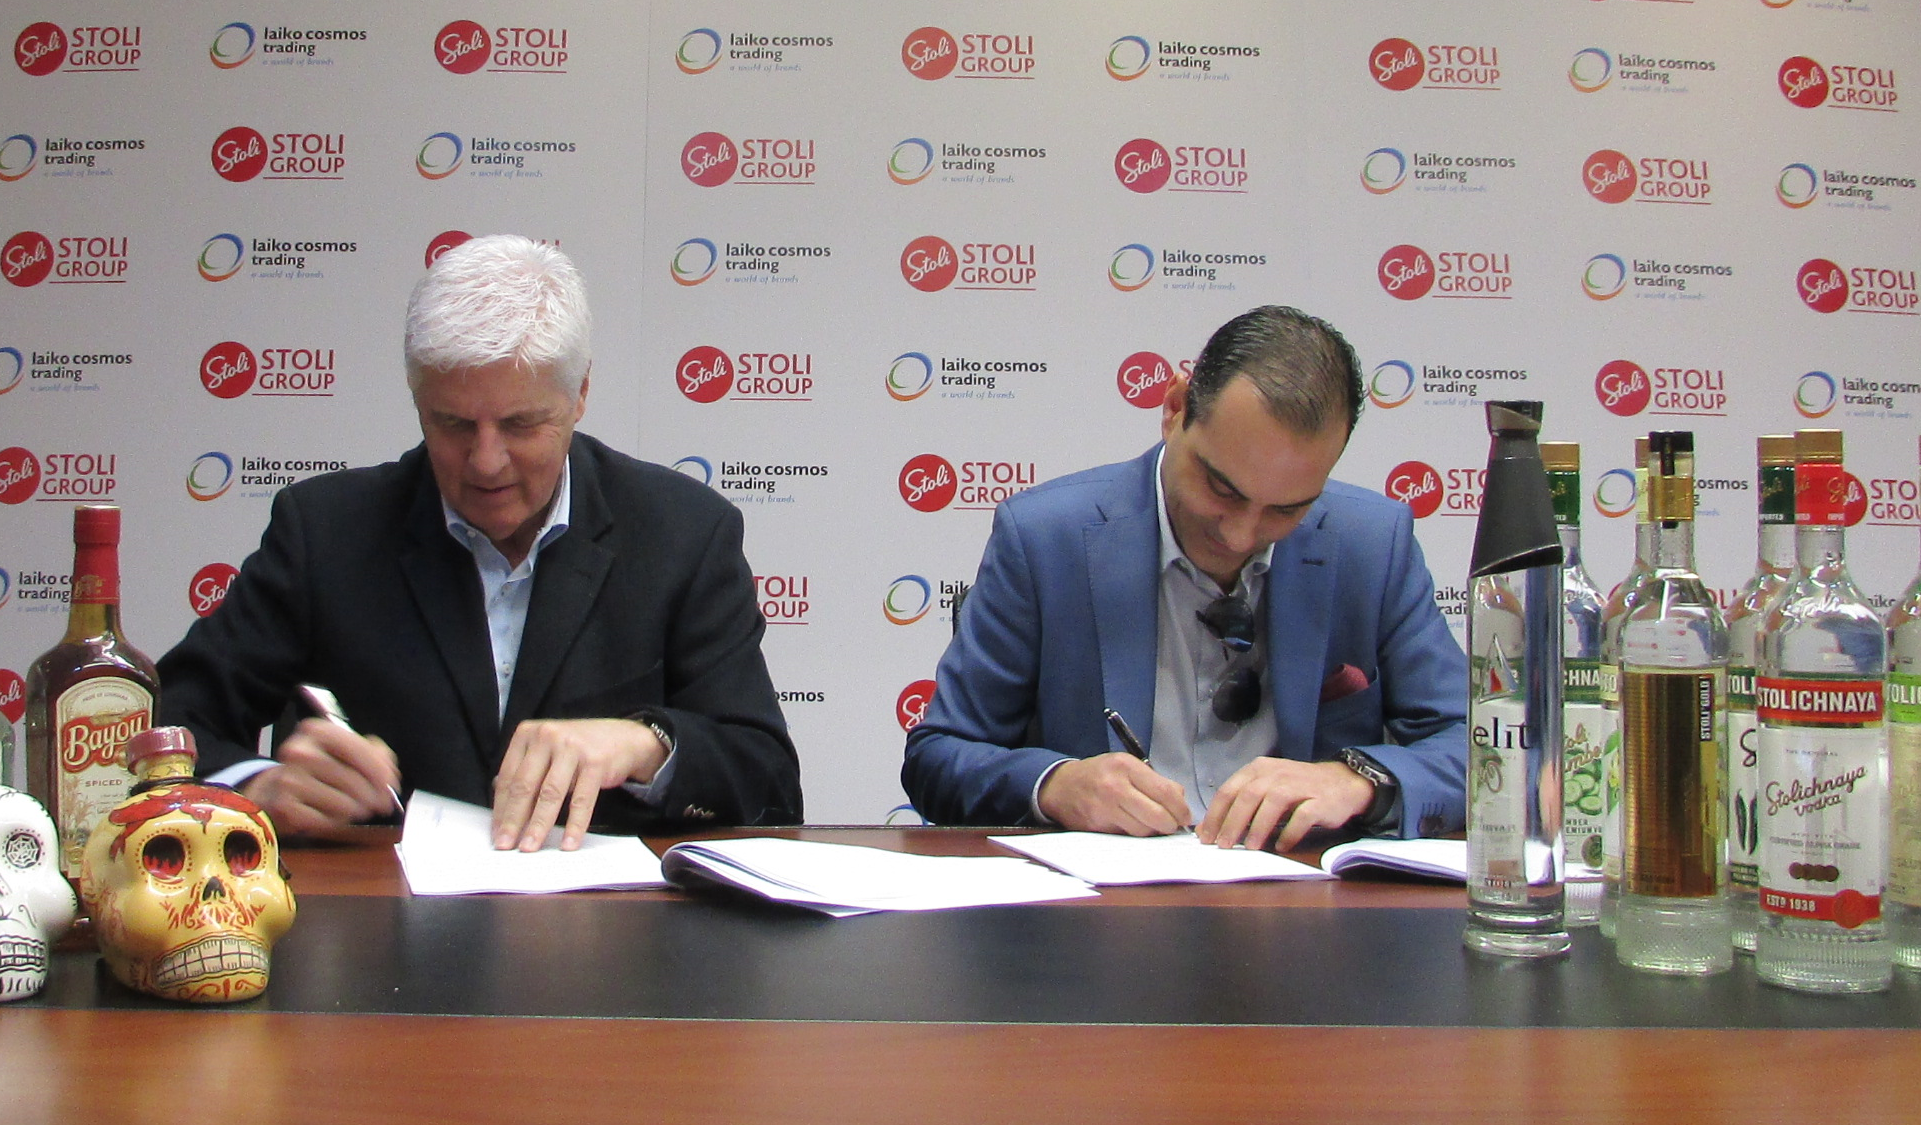 V.Petrides and A.Ioannides signing the agreement